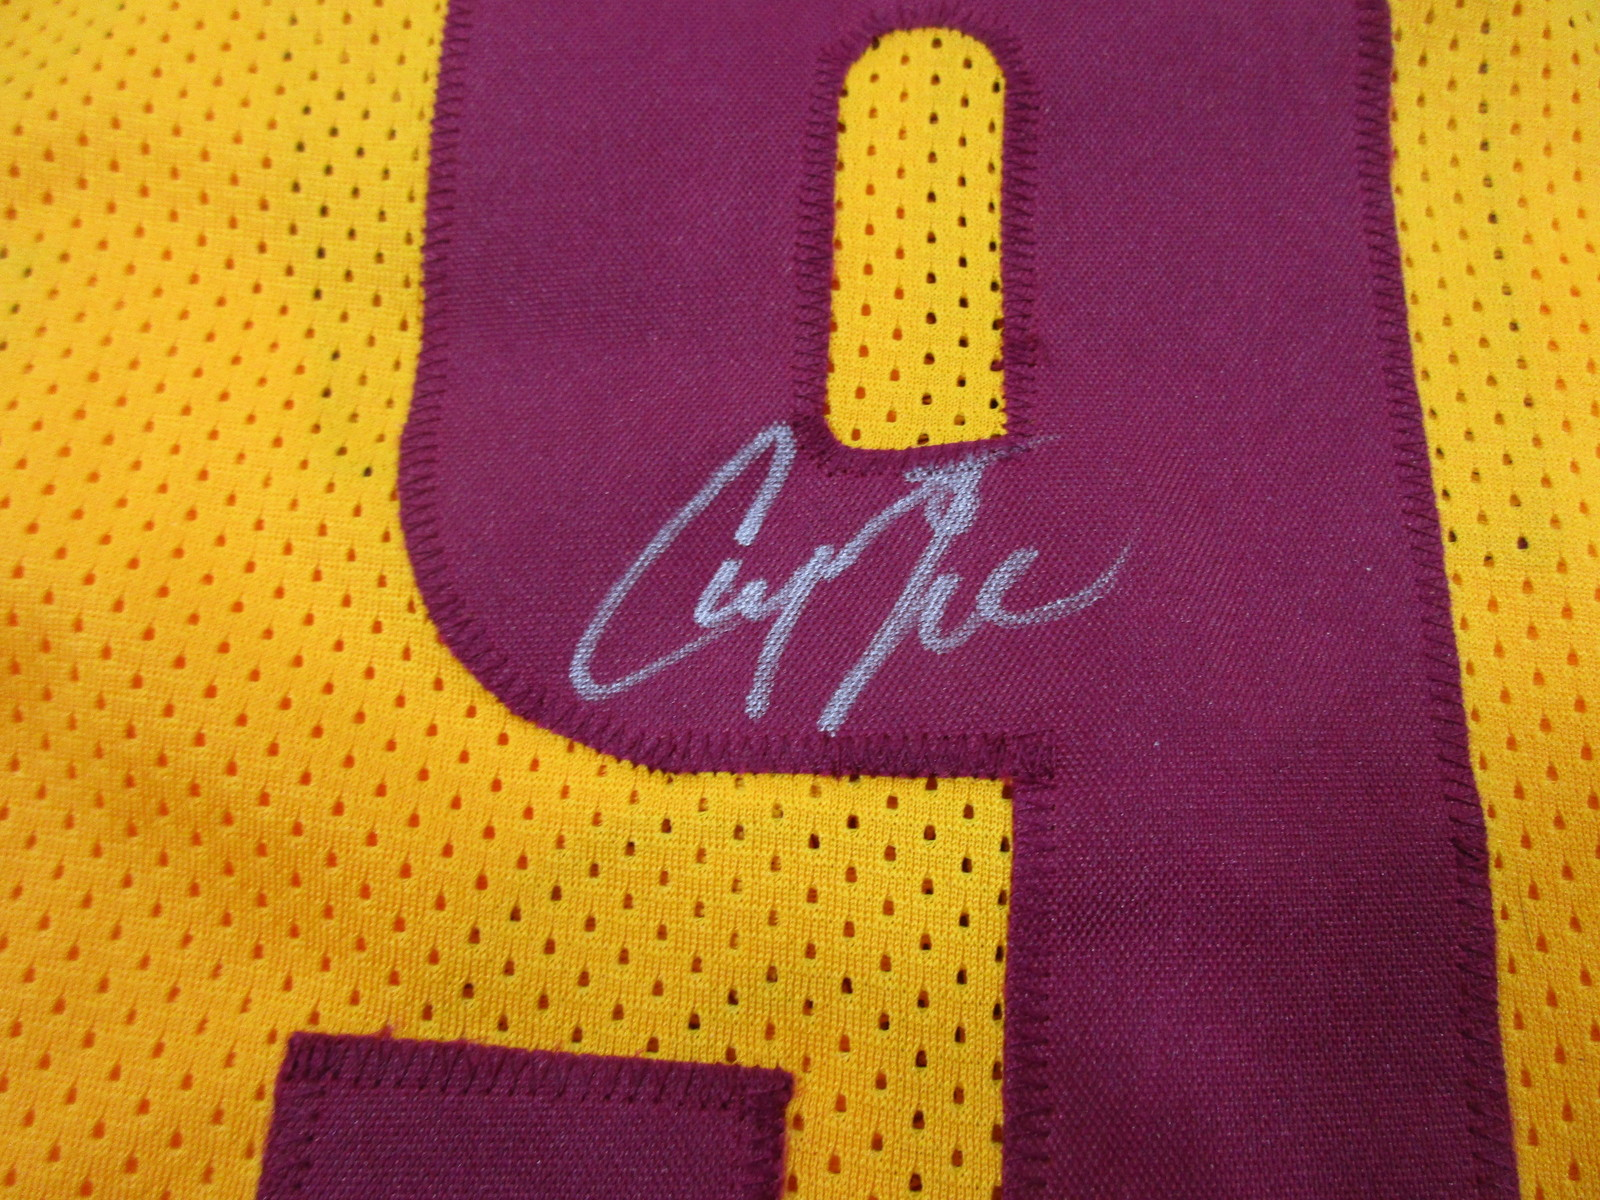 c4d972388 CHANNING FRYE - CLEVELAND CAVALIERS - HAND SIGNED CUSTOM BASKETBALL JERSEY  - COA